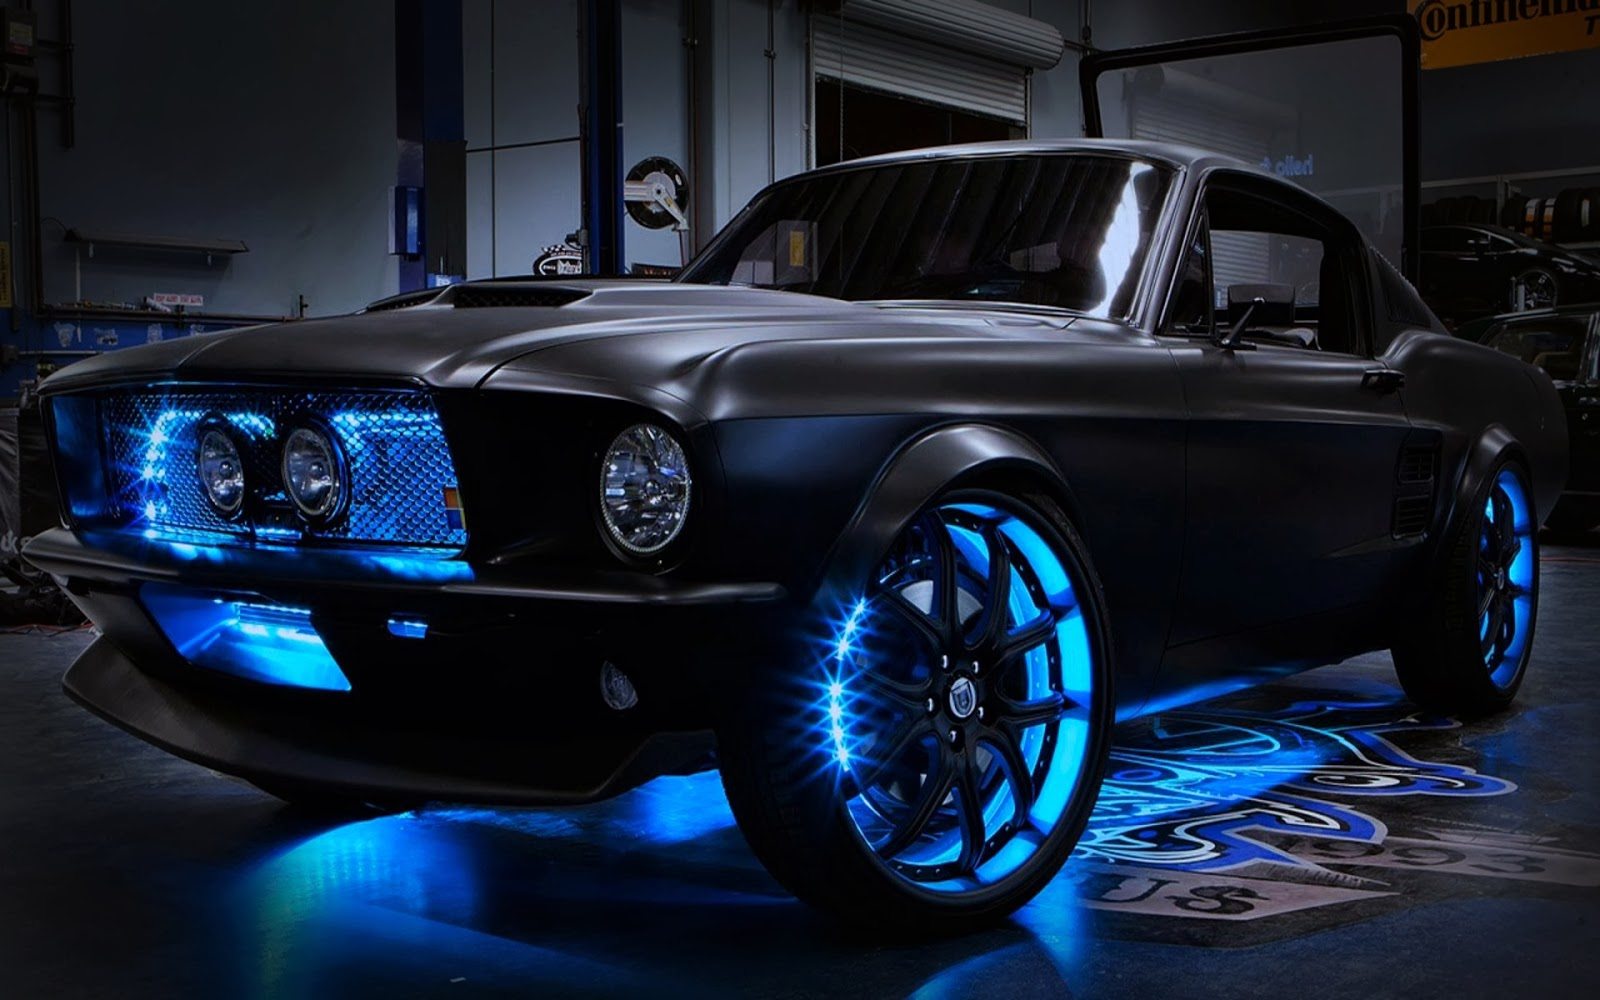 Flat_Black_Ford_Mustang_Best_Sports_Car